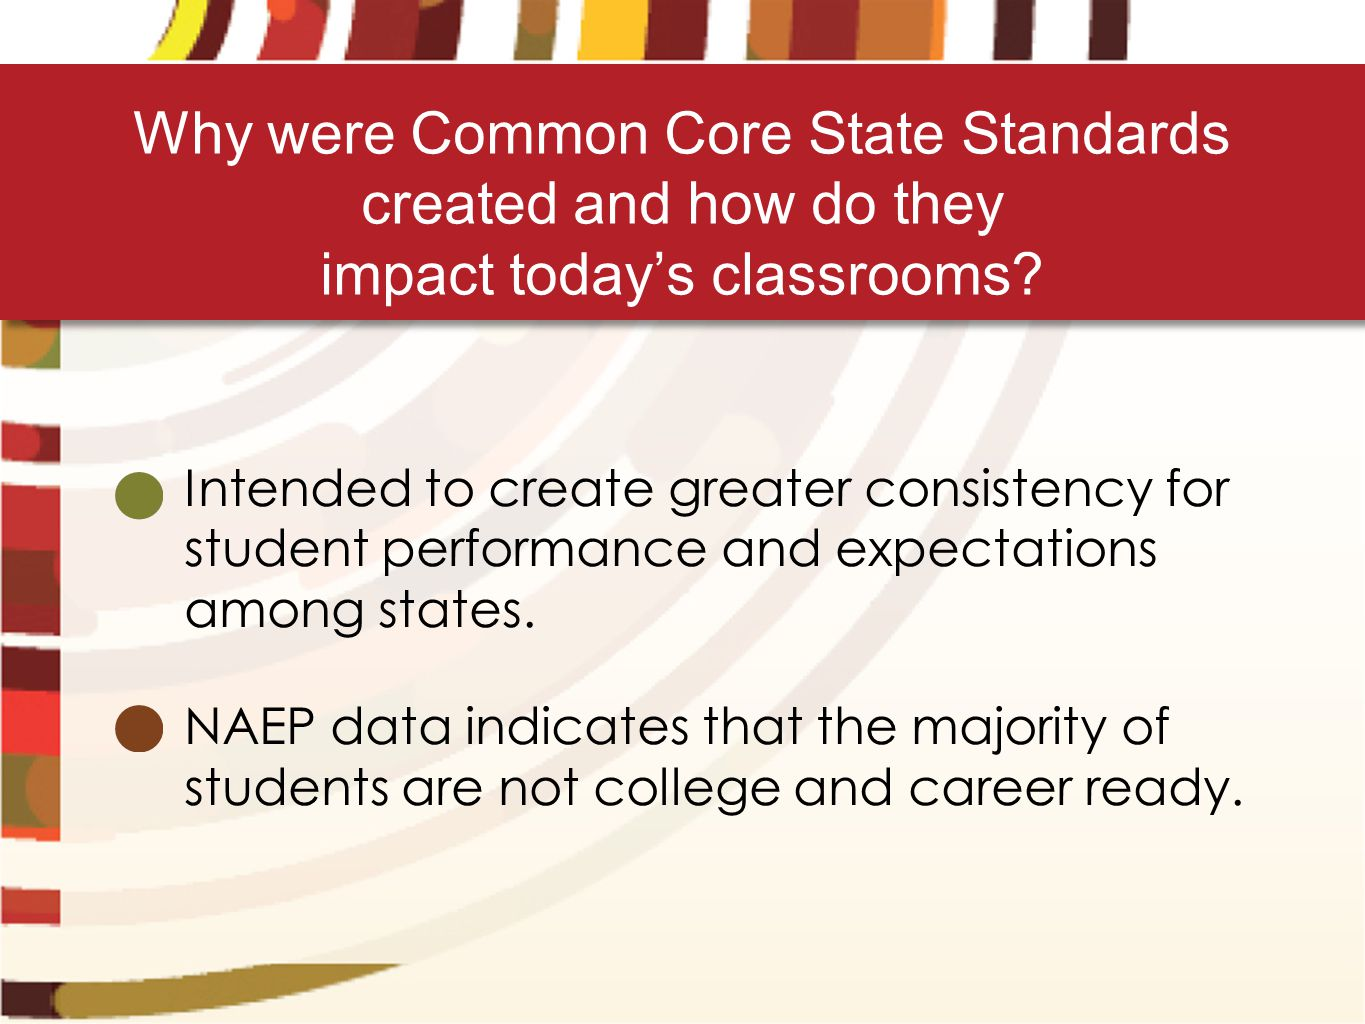 Intended to create greater consistency for student performance and expectations among states.